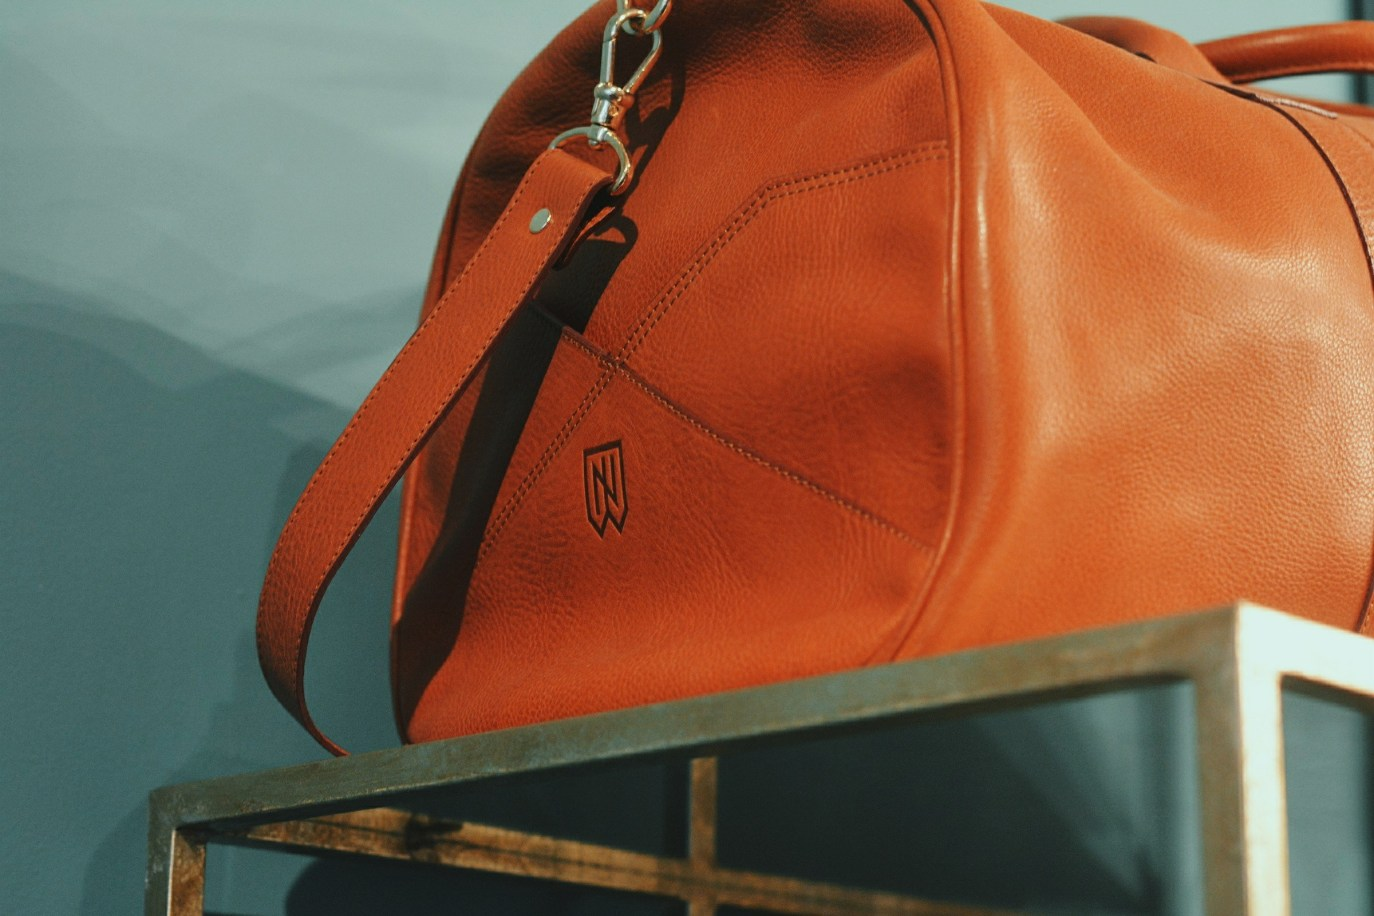 The new Noah Waxman monogram imprinted into a handcrafted leather bag.